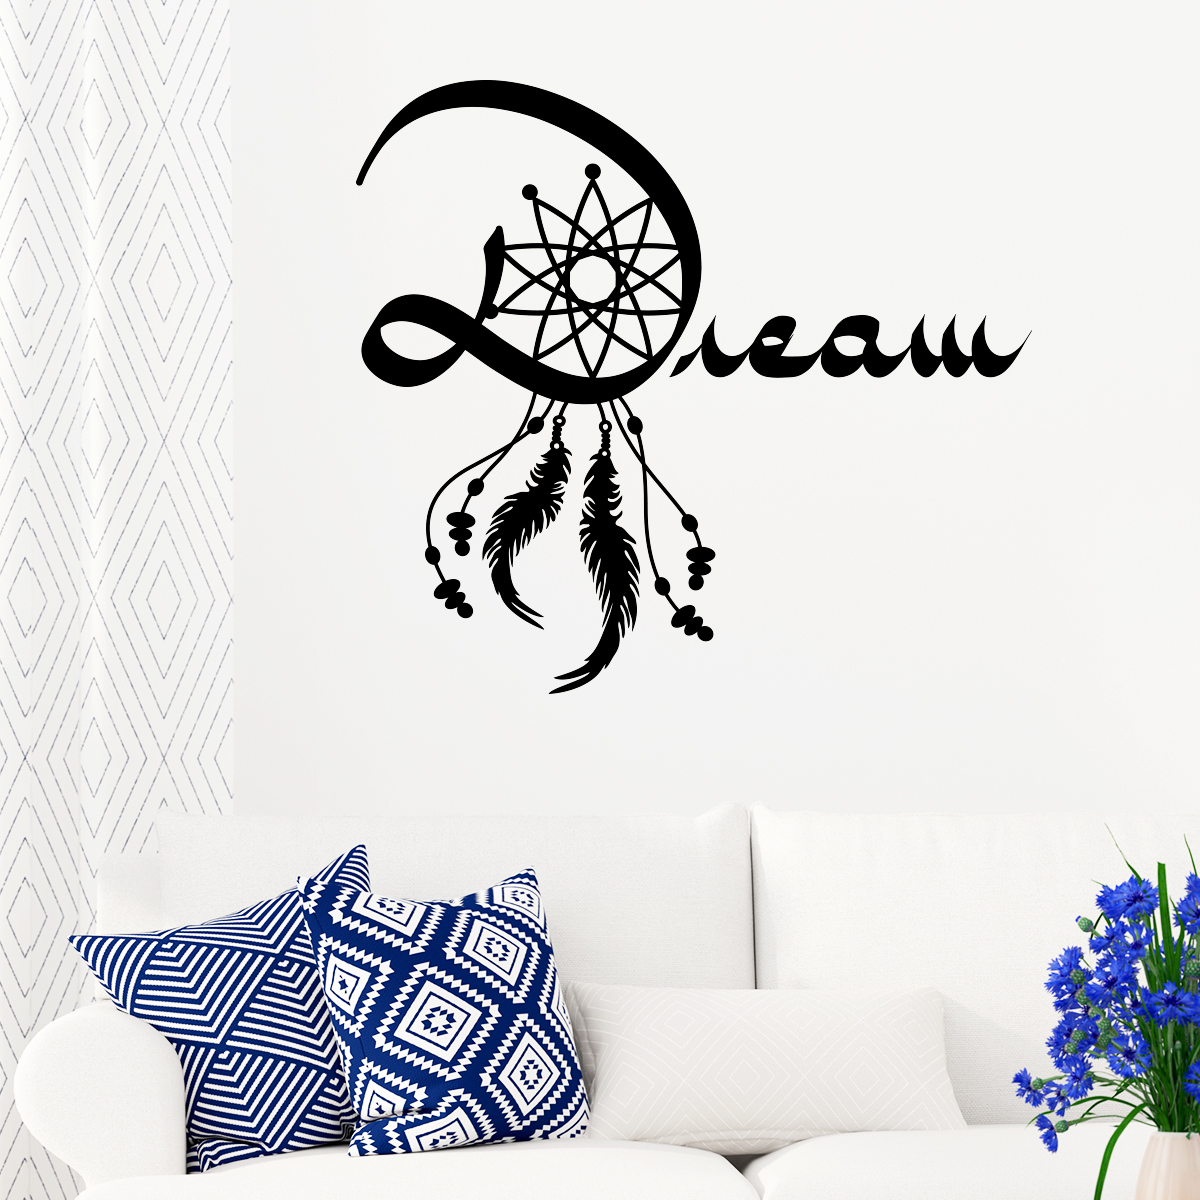 Sticker attrape r ve dream stickers art et design for Autocollant mural texte